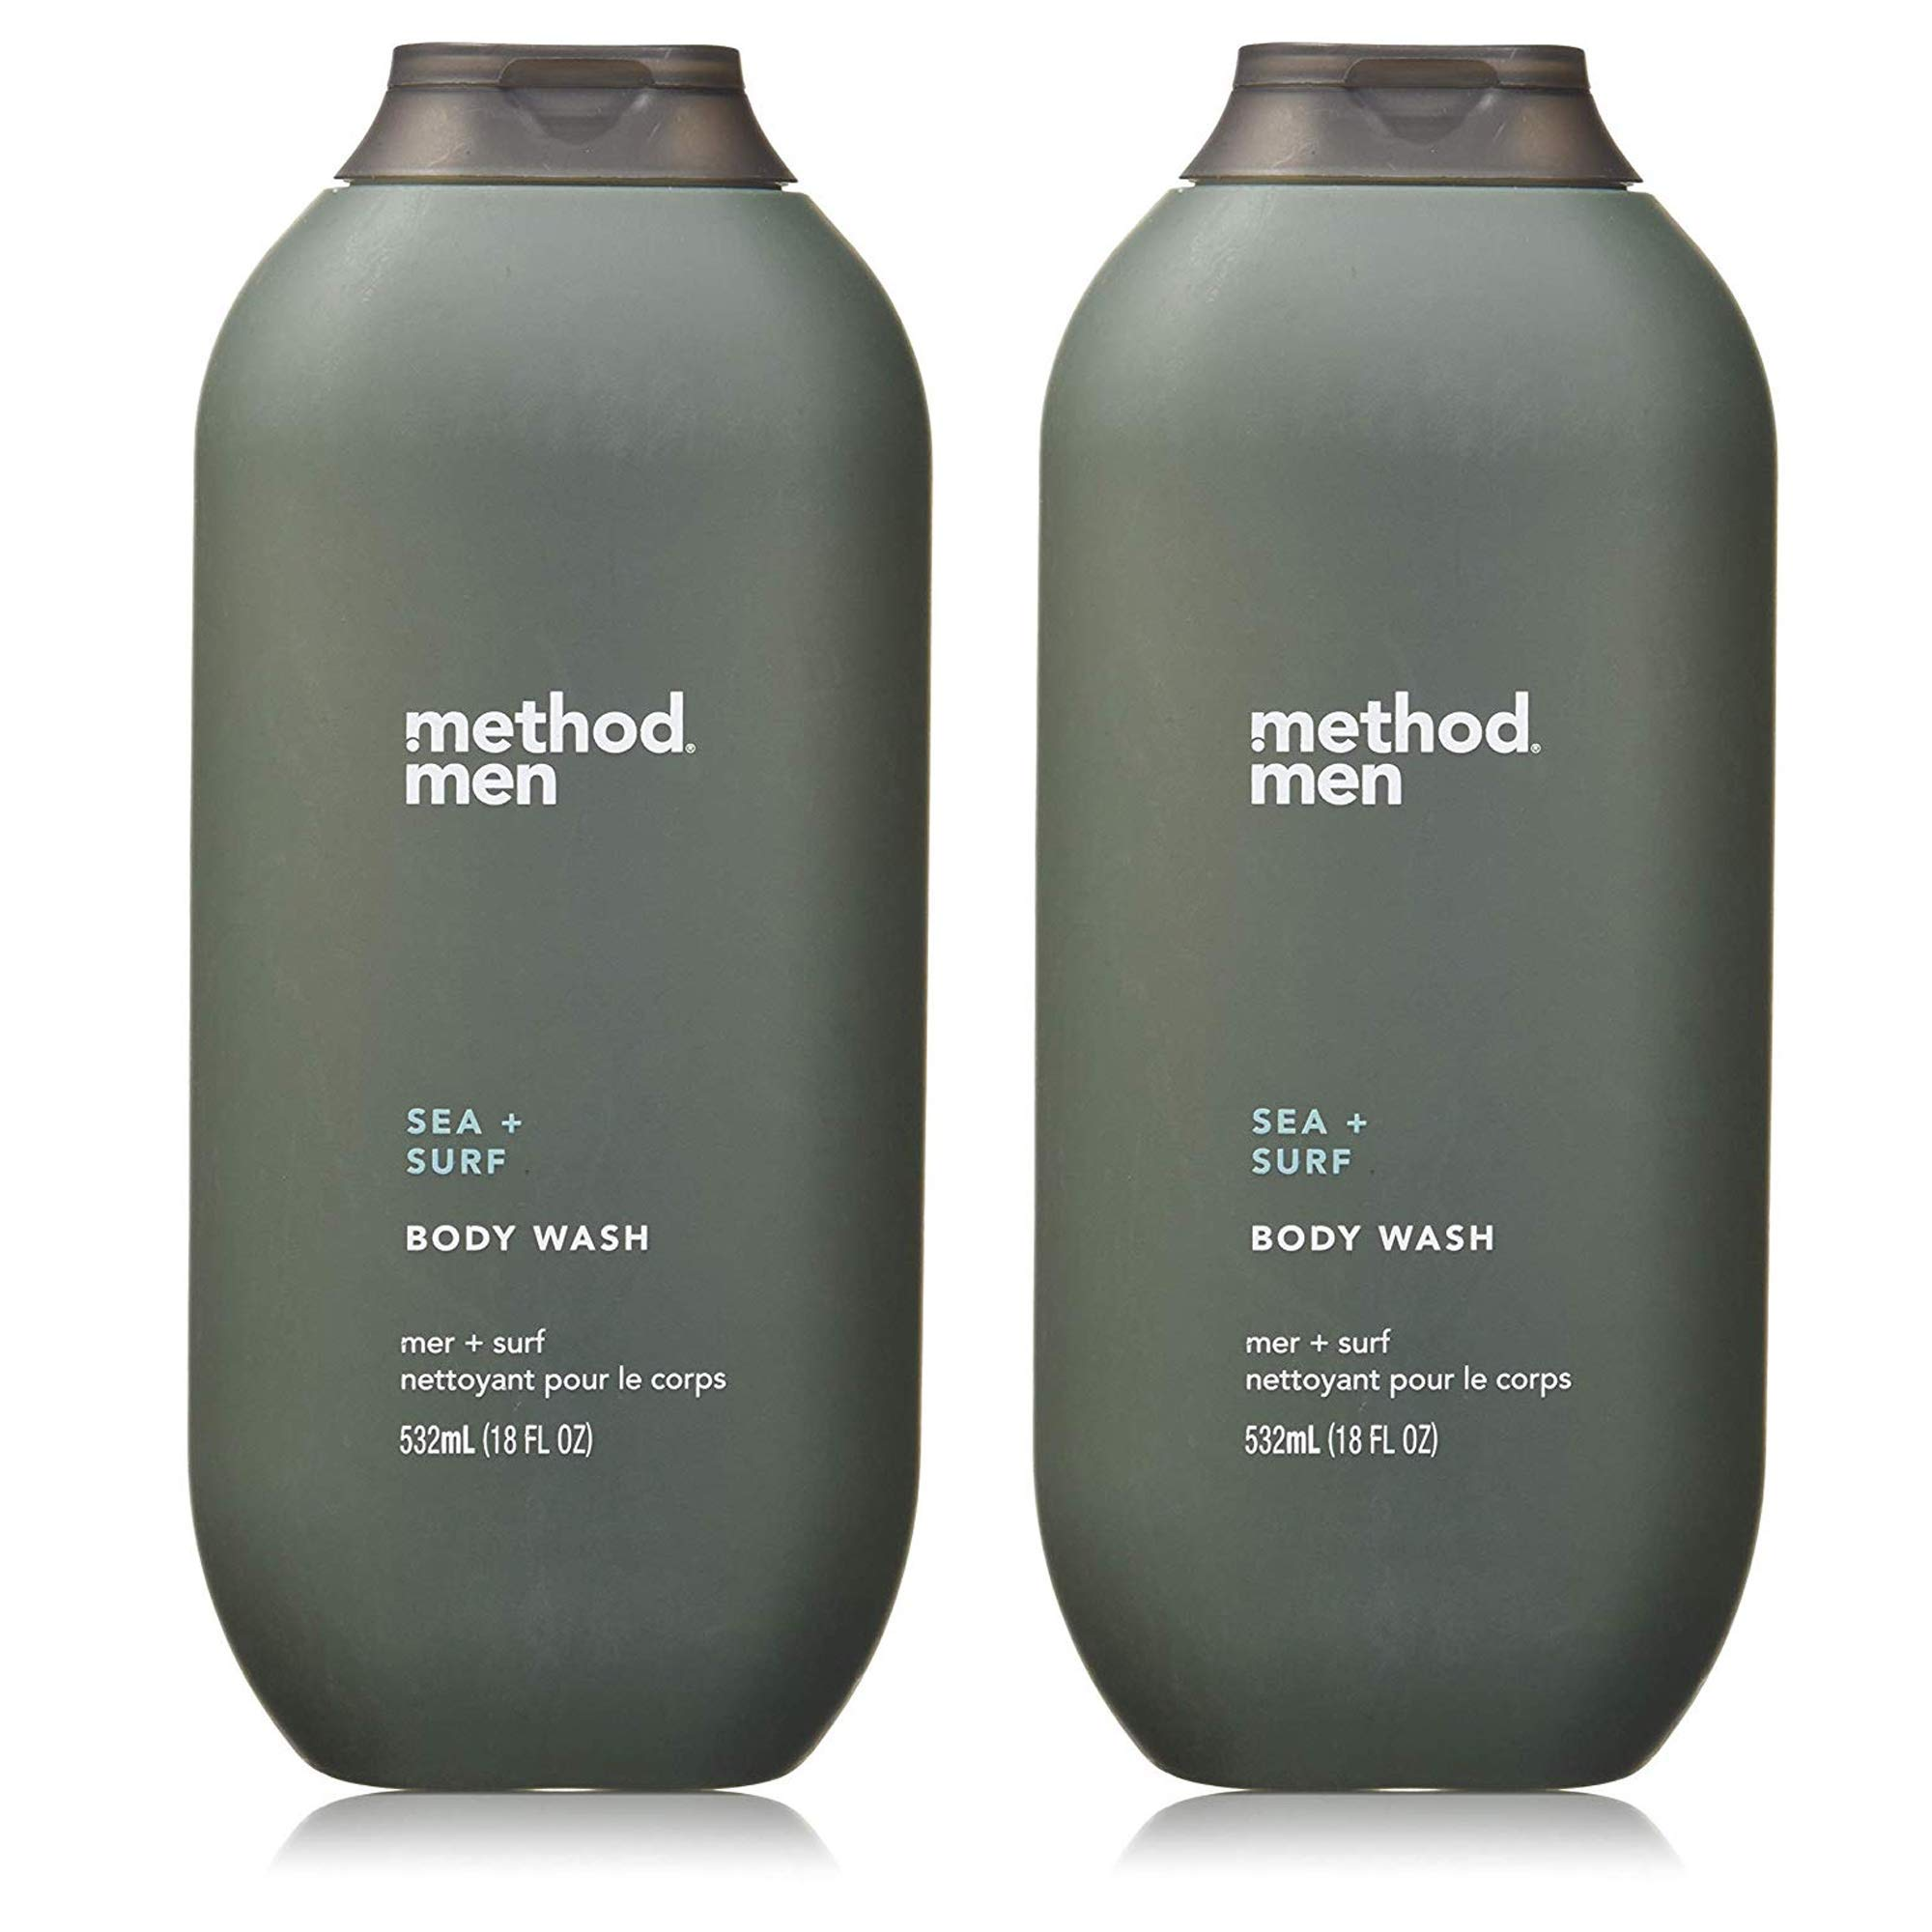 Method Men Body Wash Sea and Surf, 18 Ounce, 2 Pack